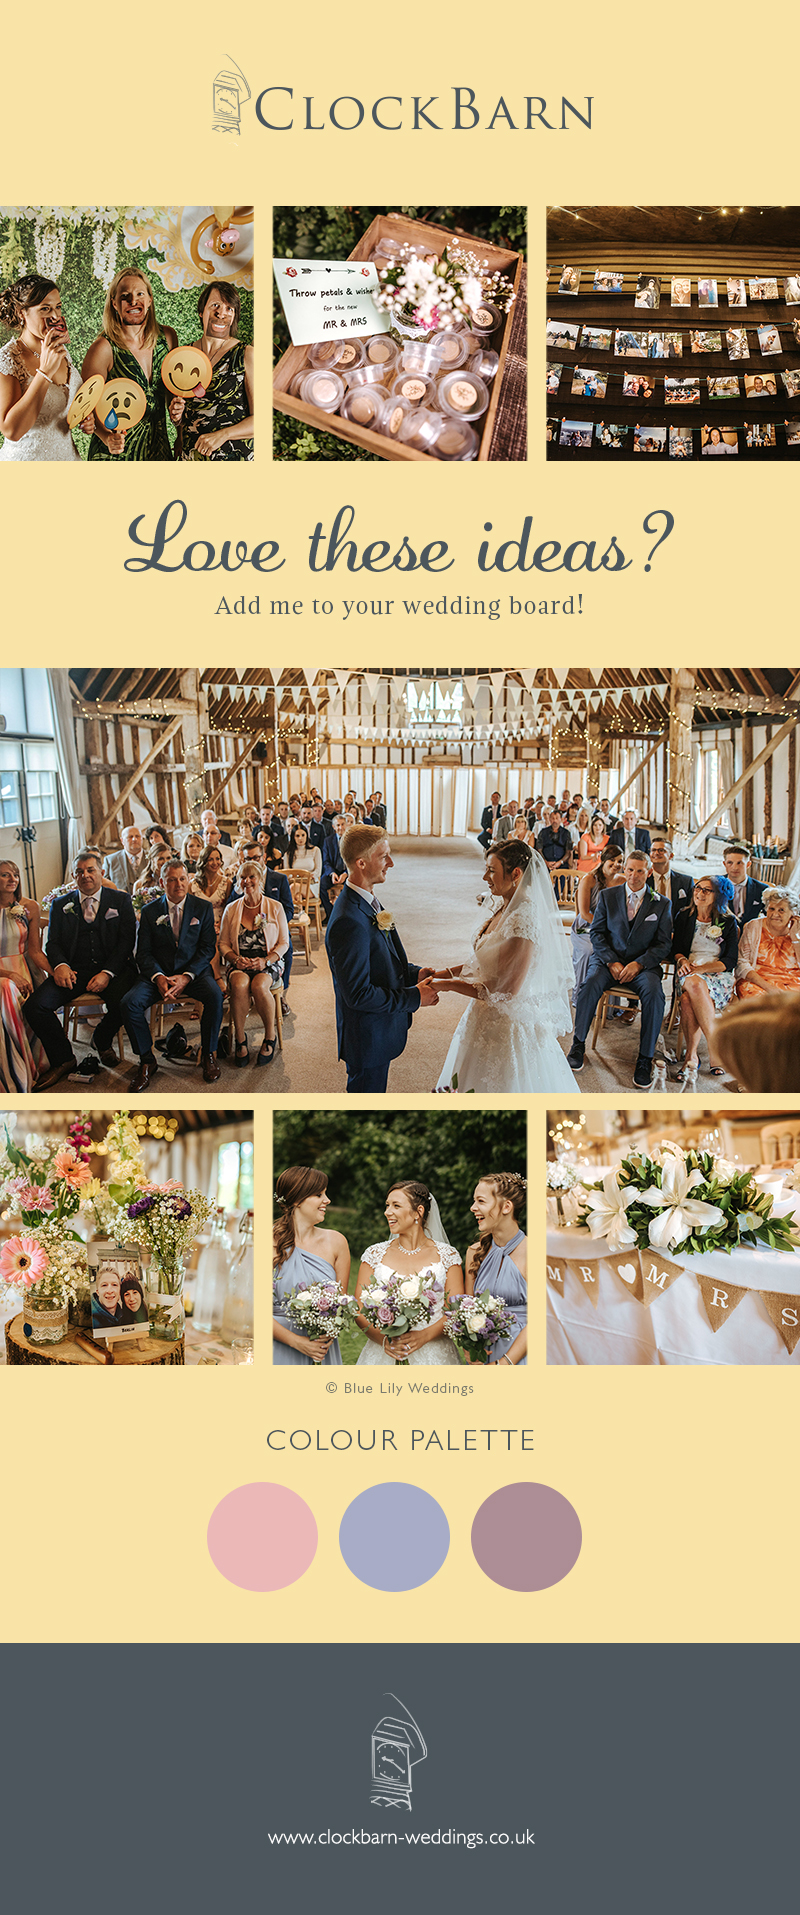 Kim and Lewis Clock Barn wedding